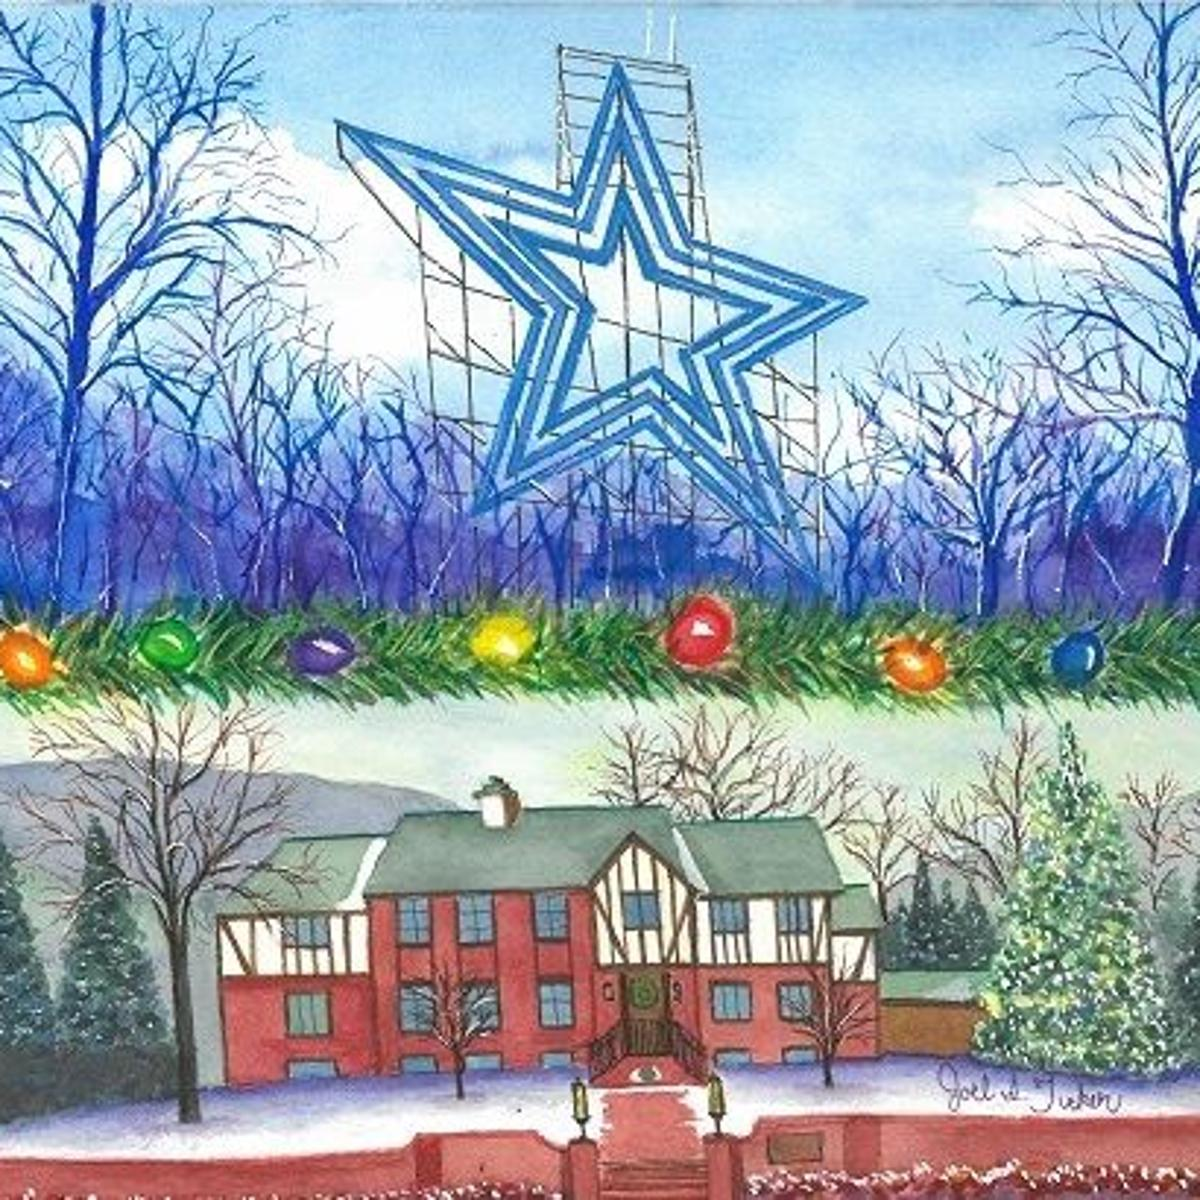 Gift local: 2014 Ronald McDonald holiday cards feature Mill Mountain on